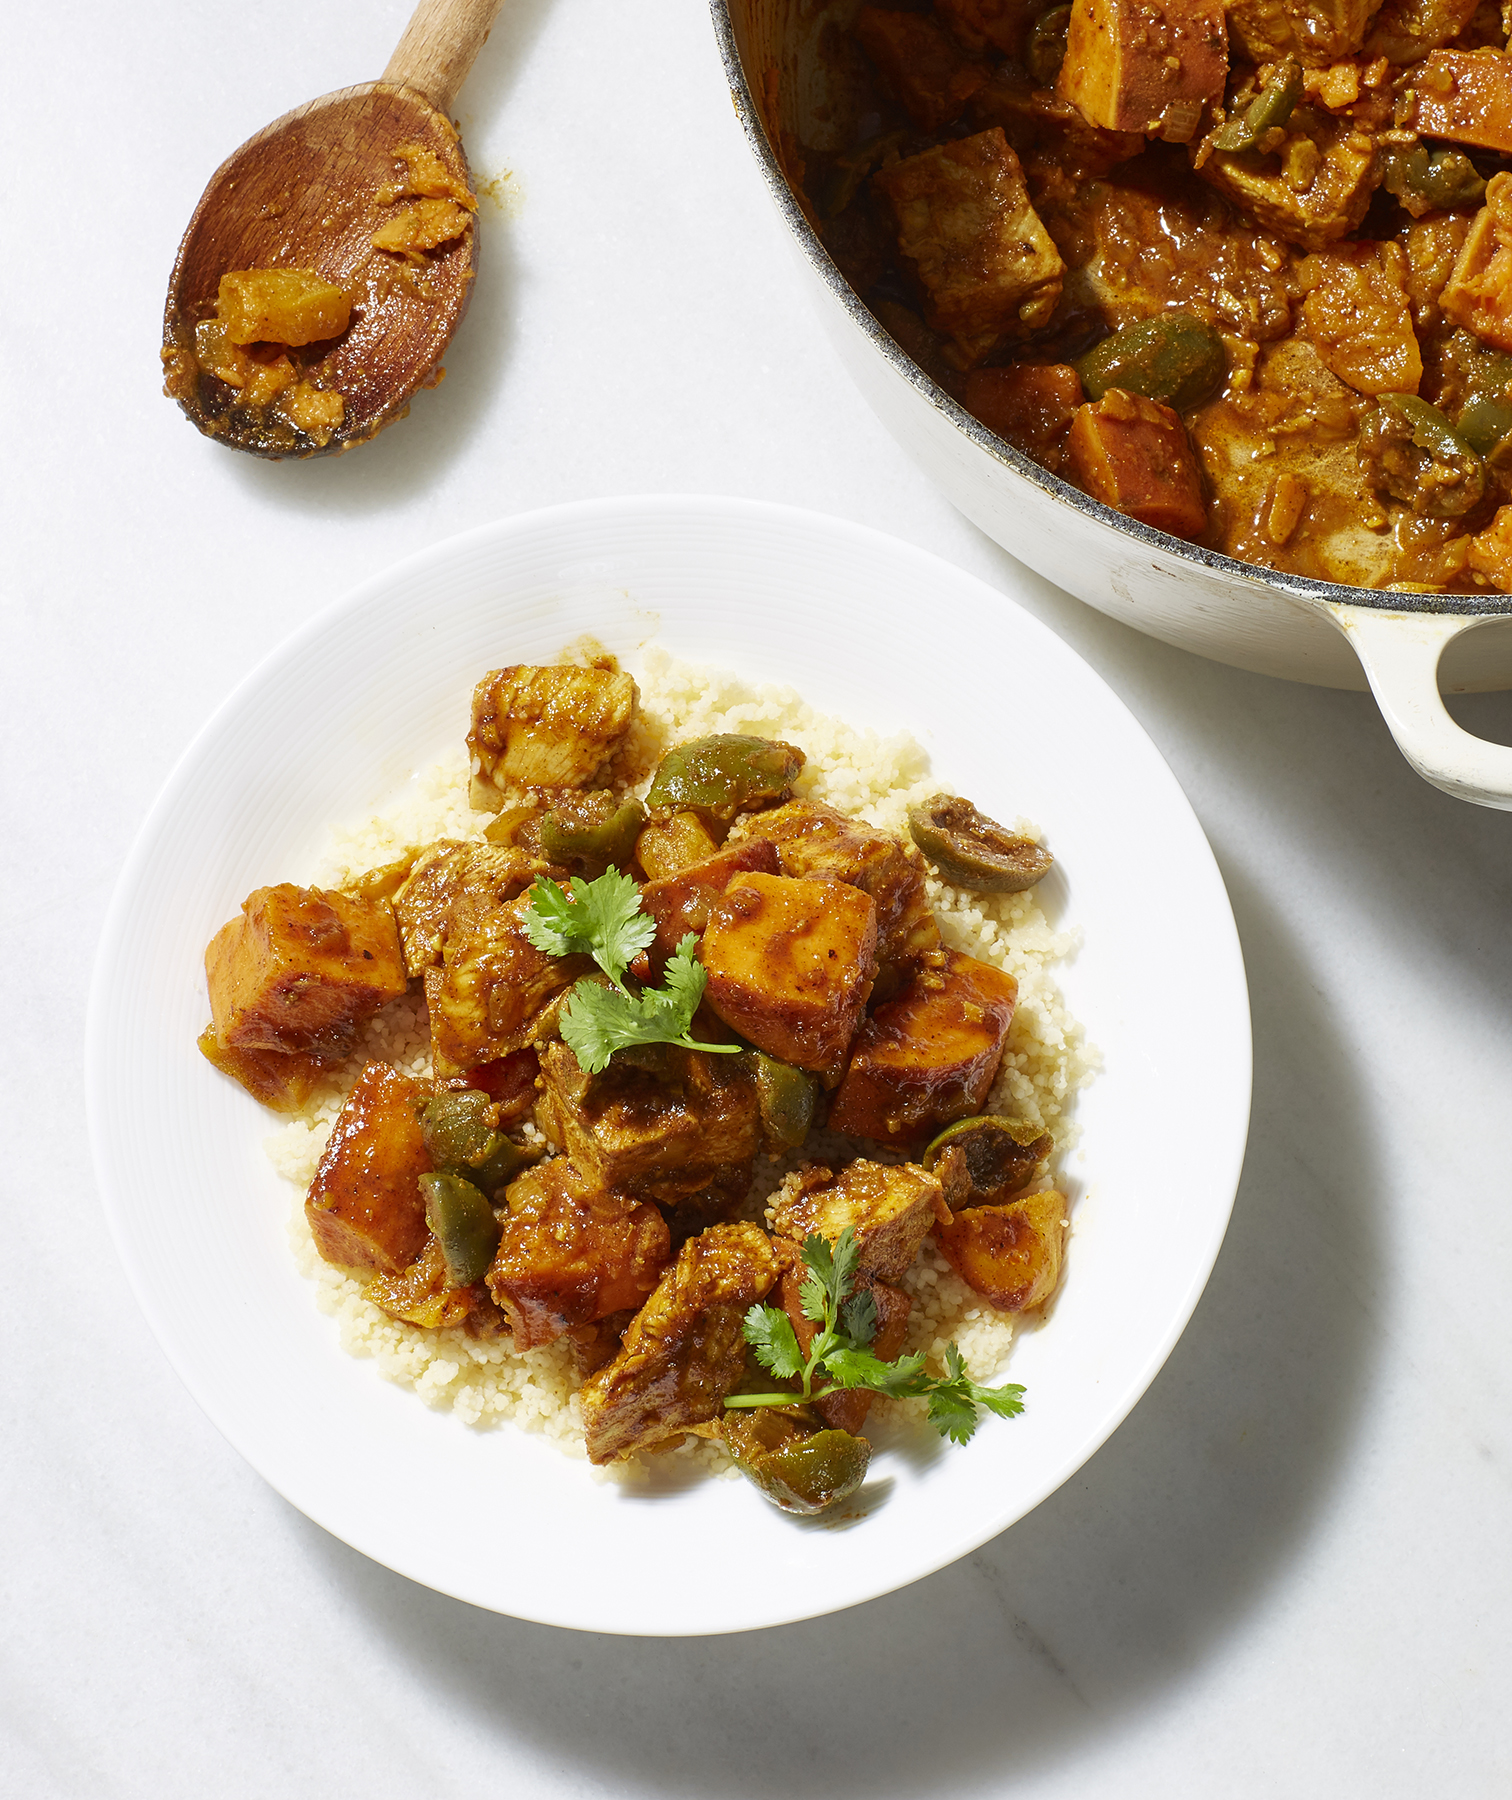 Turkey, Olive and Apricot Tagine